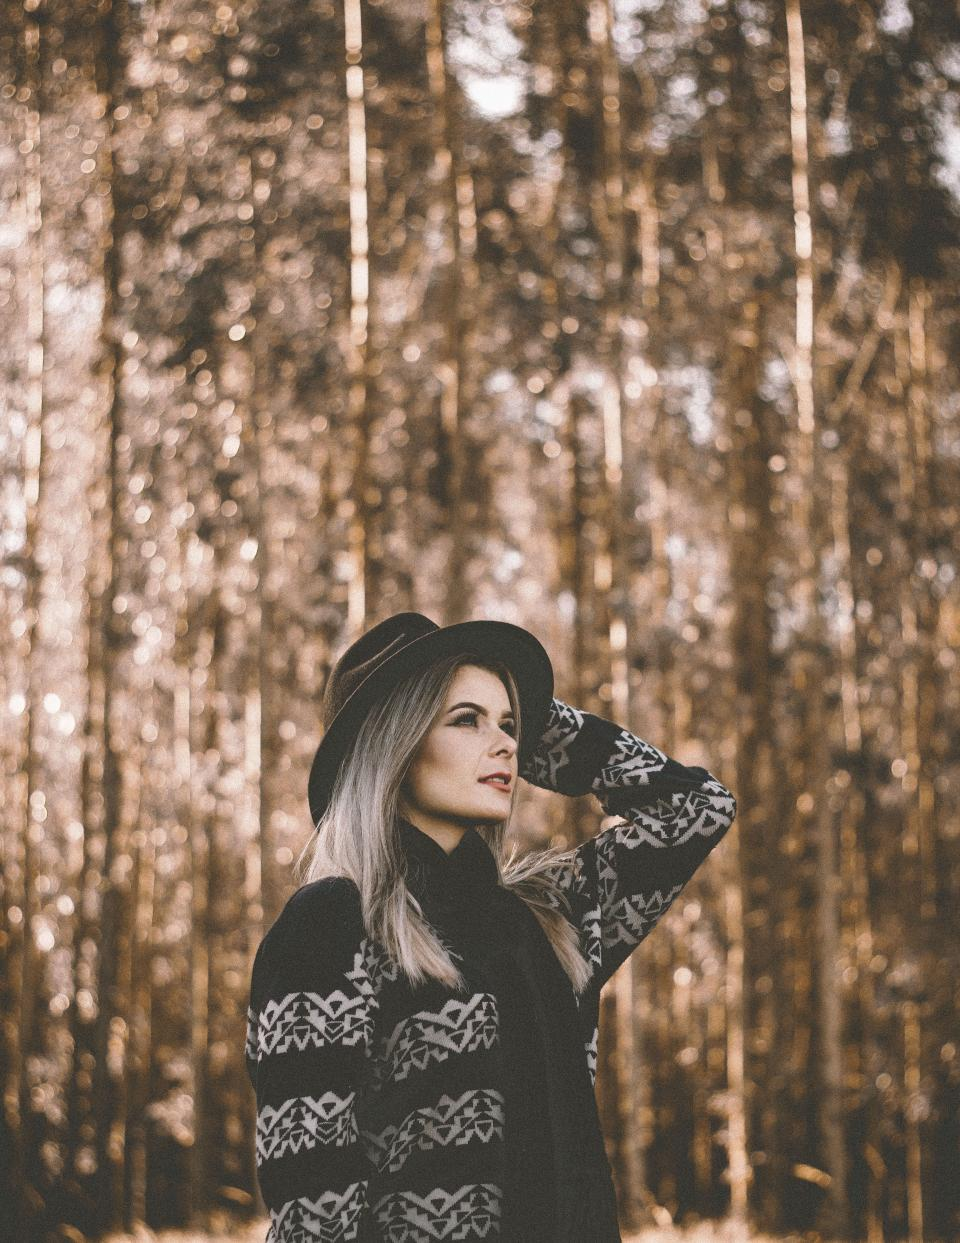 nature people woman hat blonde beauty face trees leaves woods forest travel adventure